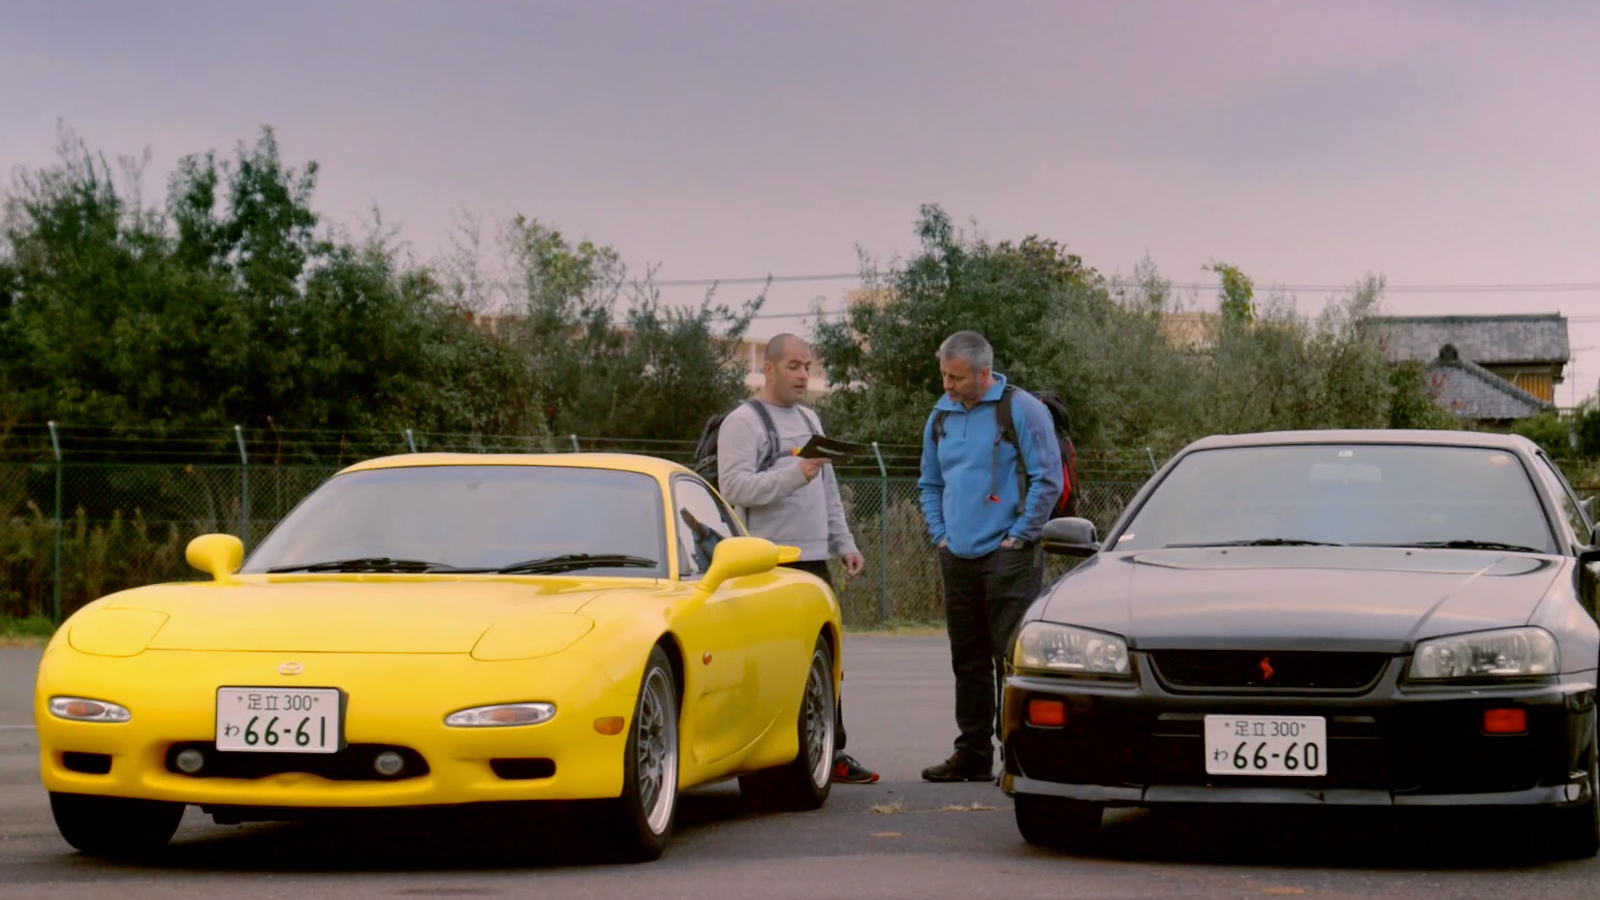 Top Gear's Japan Episode Blew My Mind With '90s Sports Cars